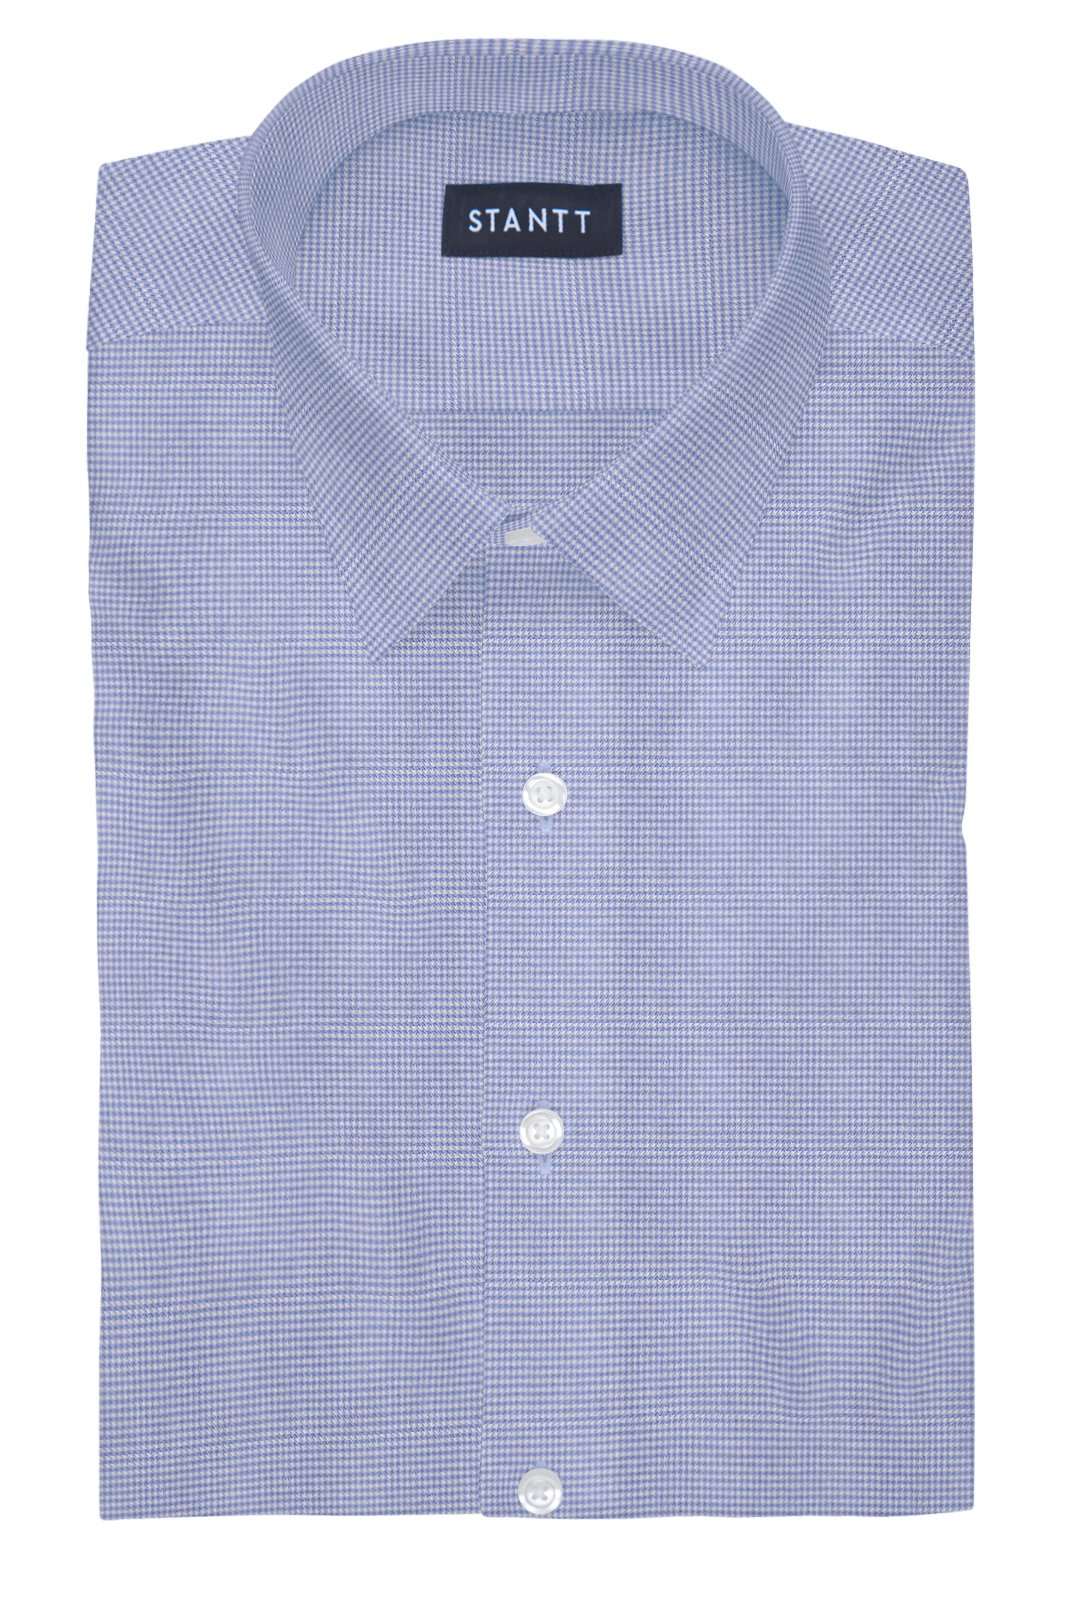 Performance Light Blue Houndstooth: Semi-Spread Collar, Barrel Cuff